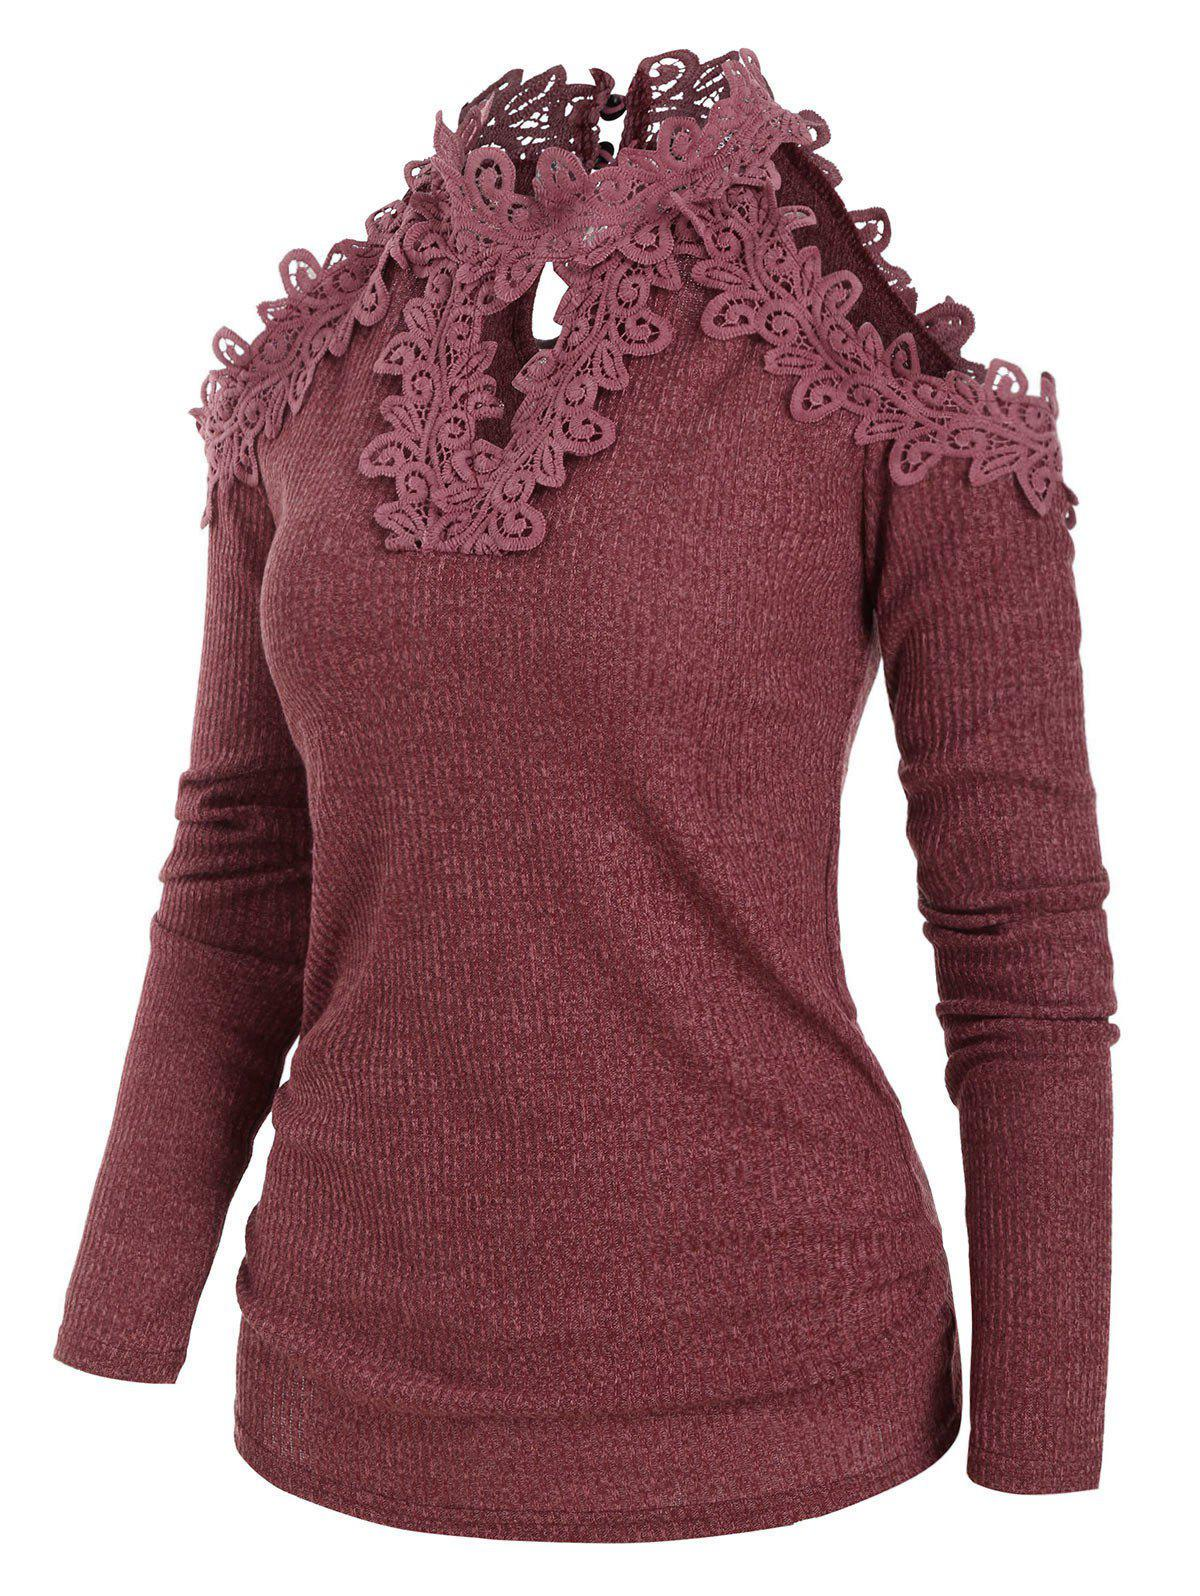 Latest Open Shoulder Guipure Lace Keyhole Knitwear